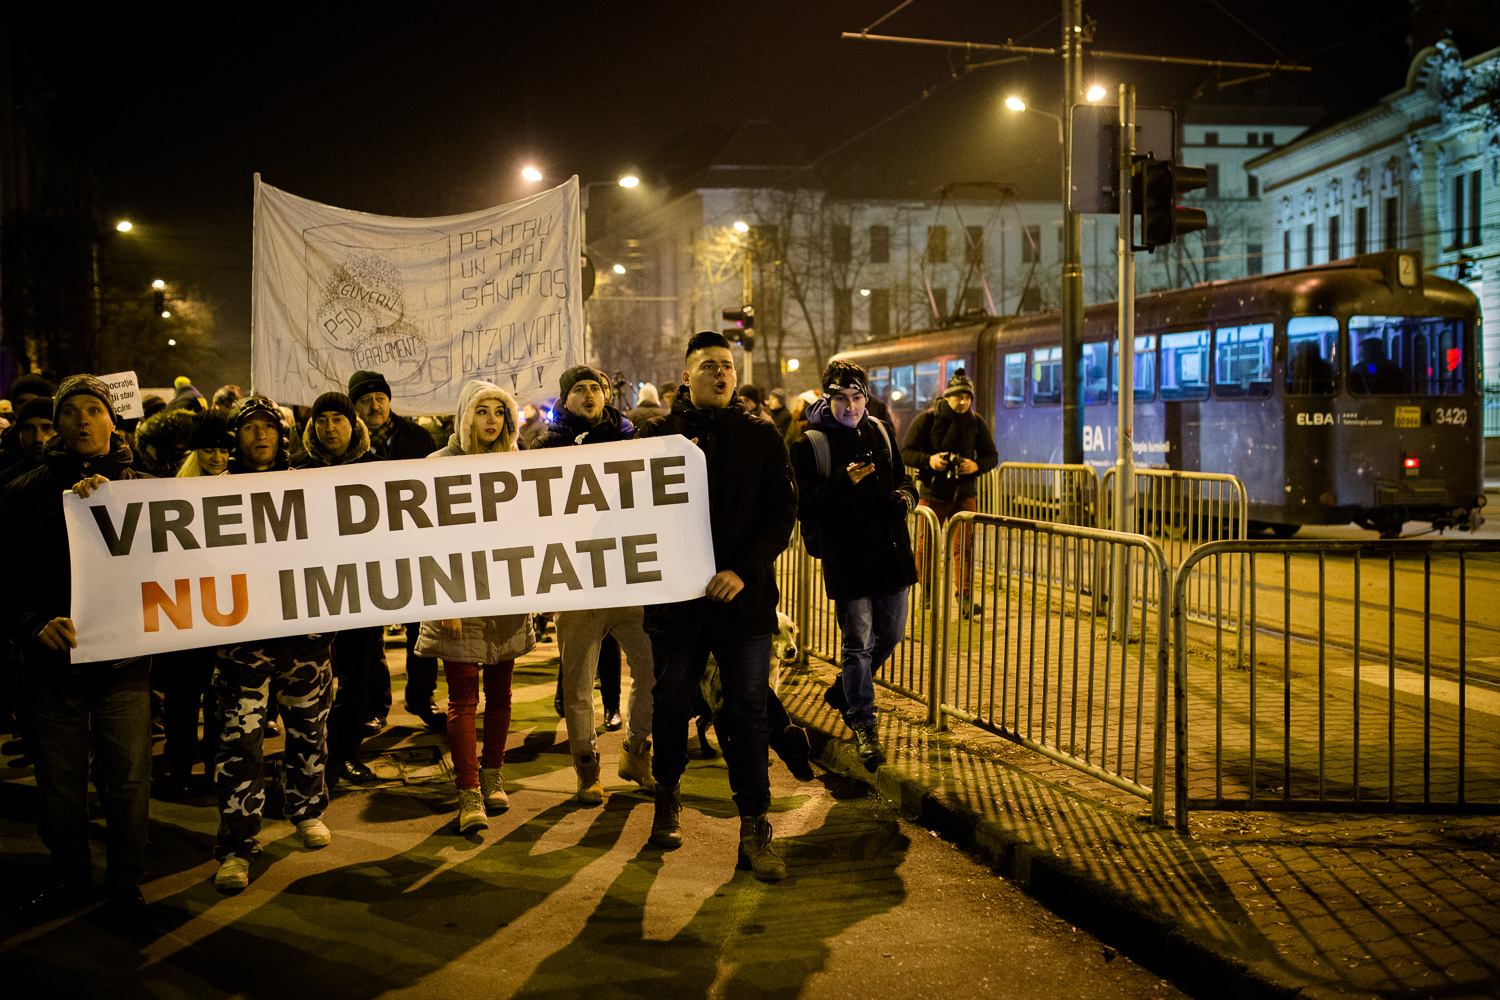 Protesters taking to the streets in Timisoara, Romania